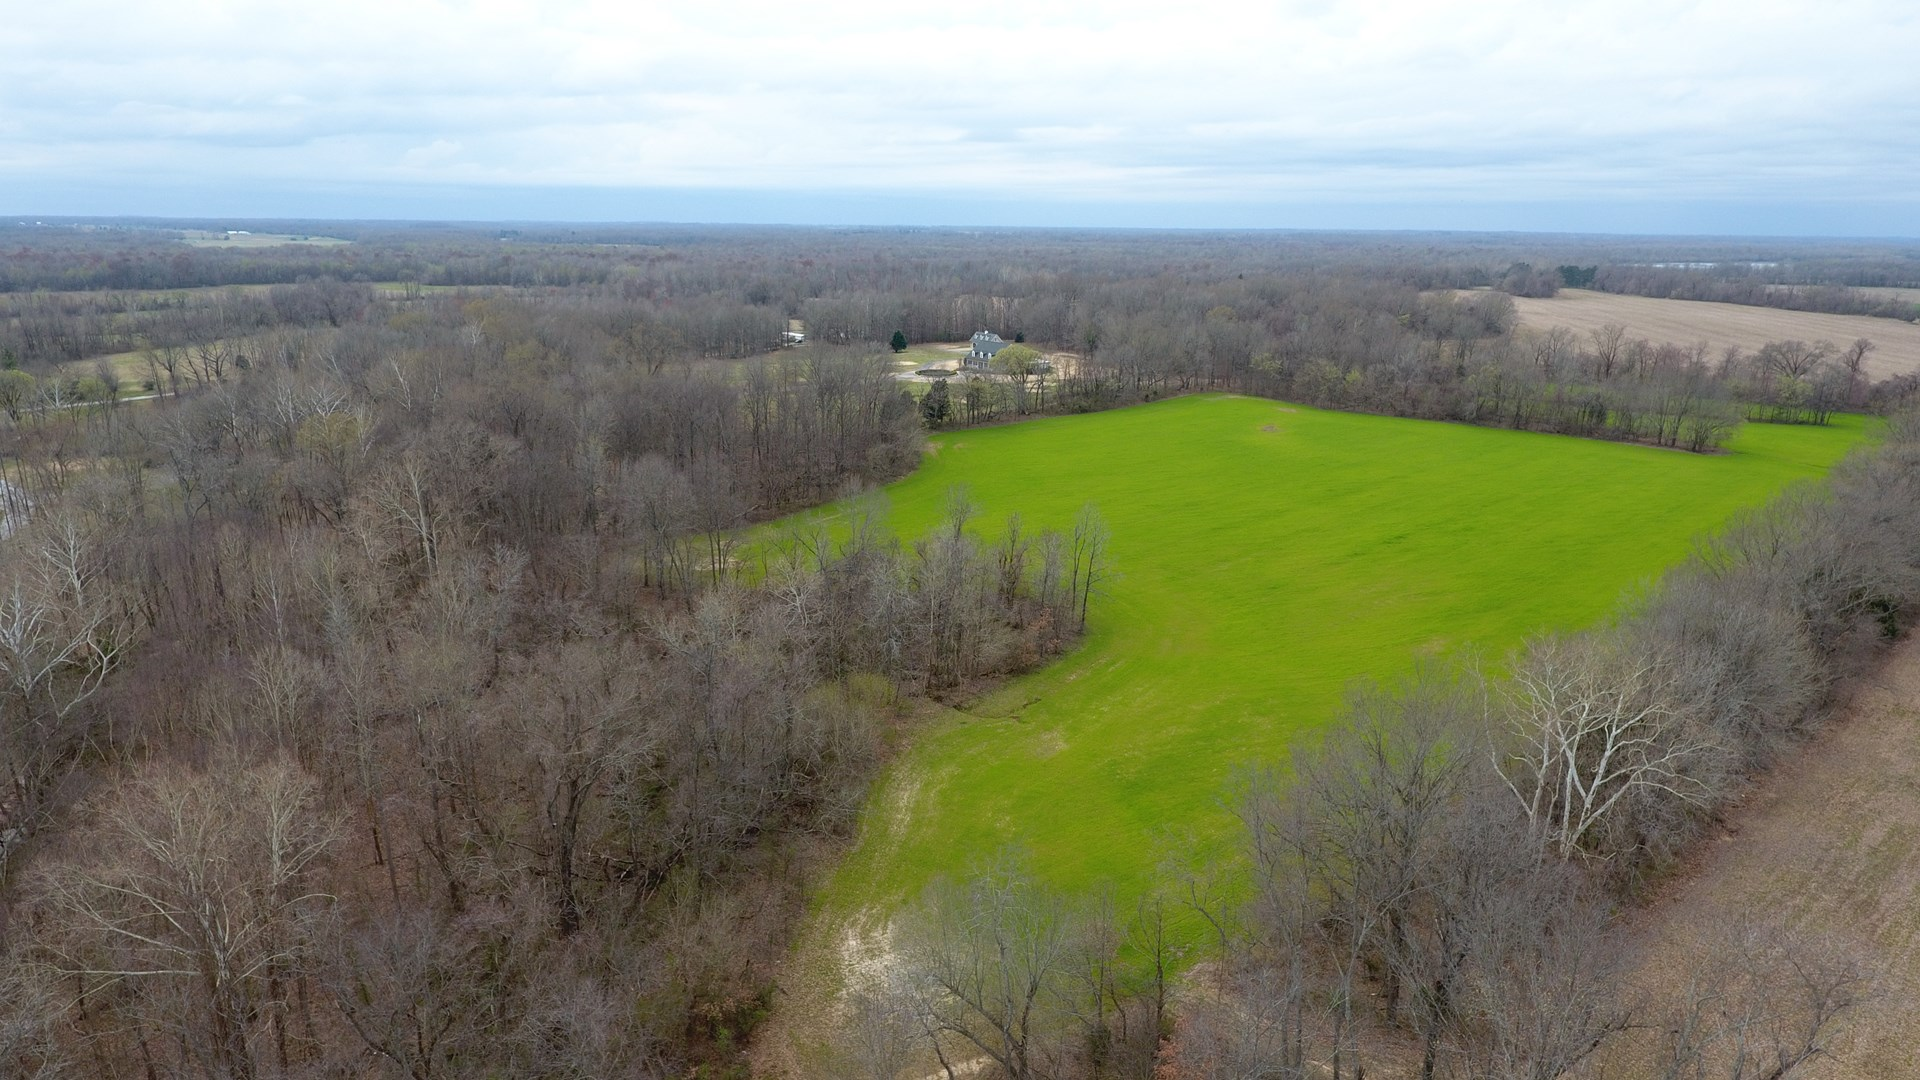 Farm For Sale near Jackson TN, Crops, Timber, Building Sites